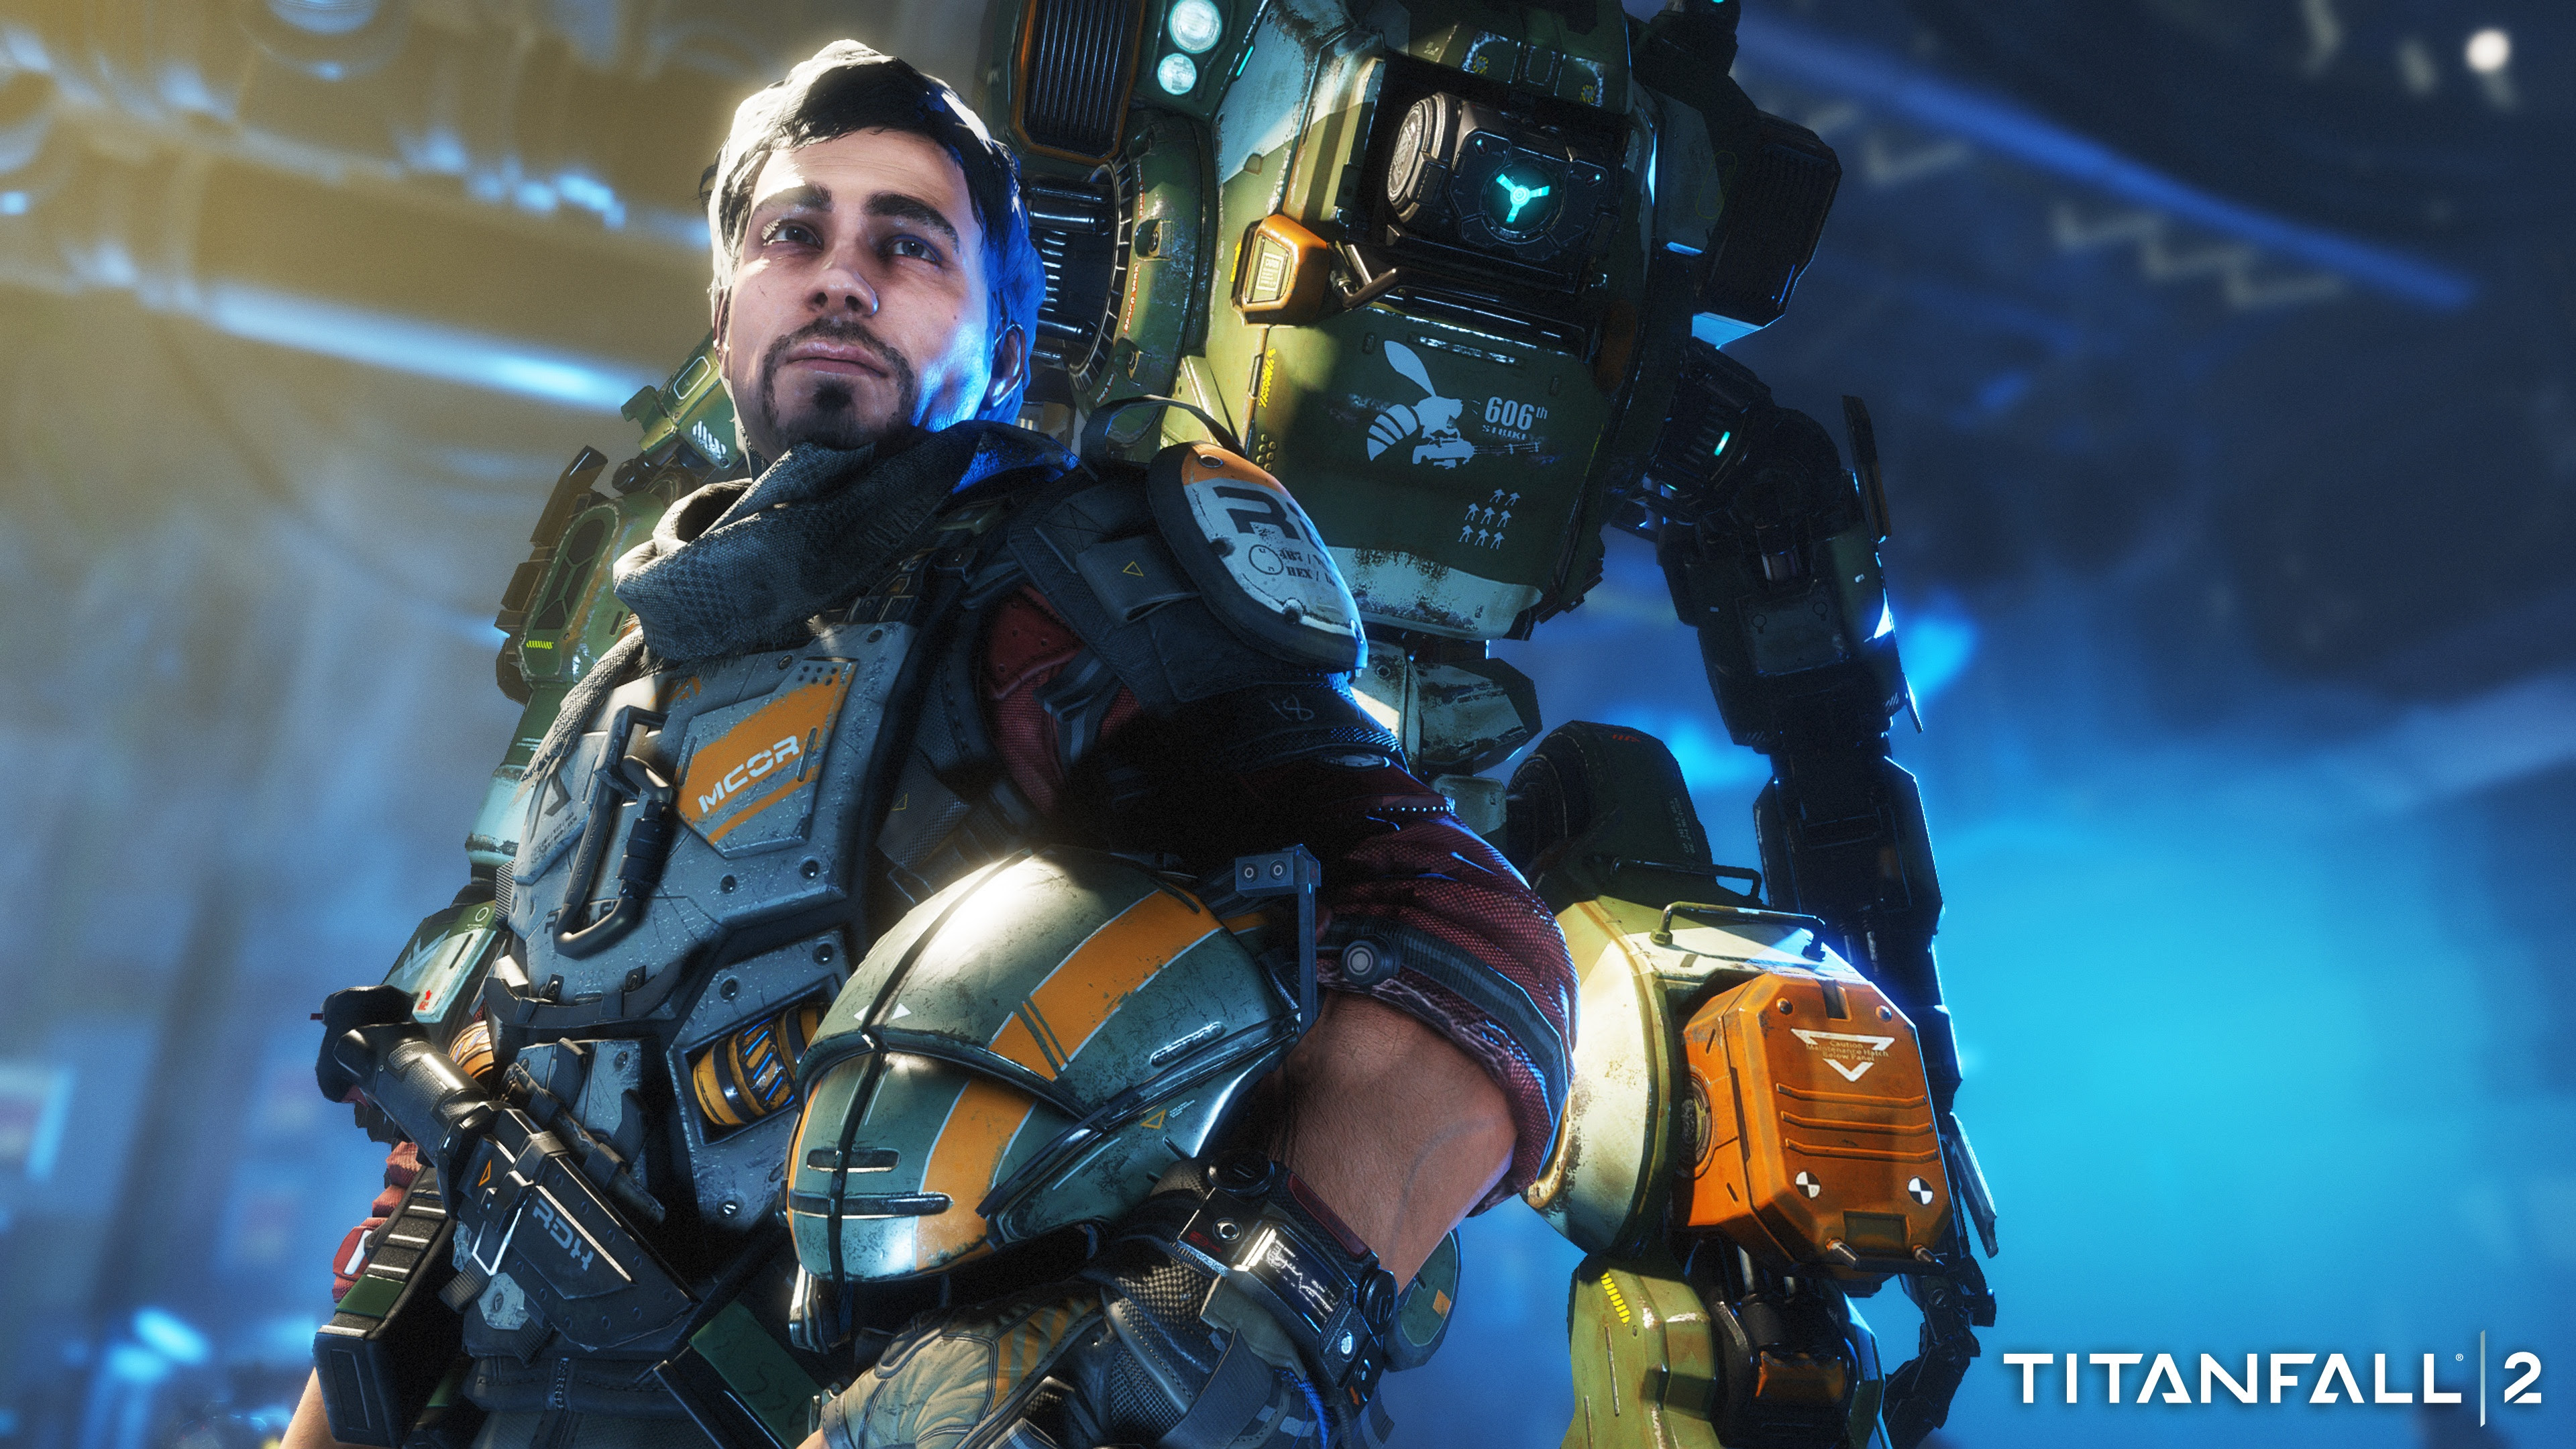 Titanfall 2 Pilot Wallpapers in jpg format for free download